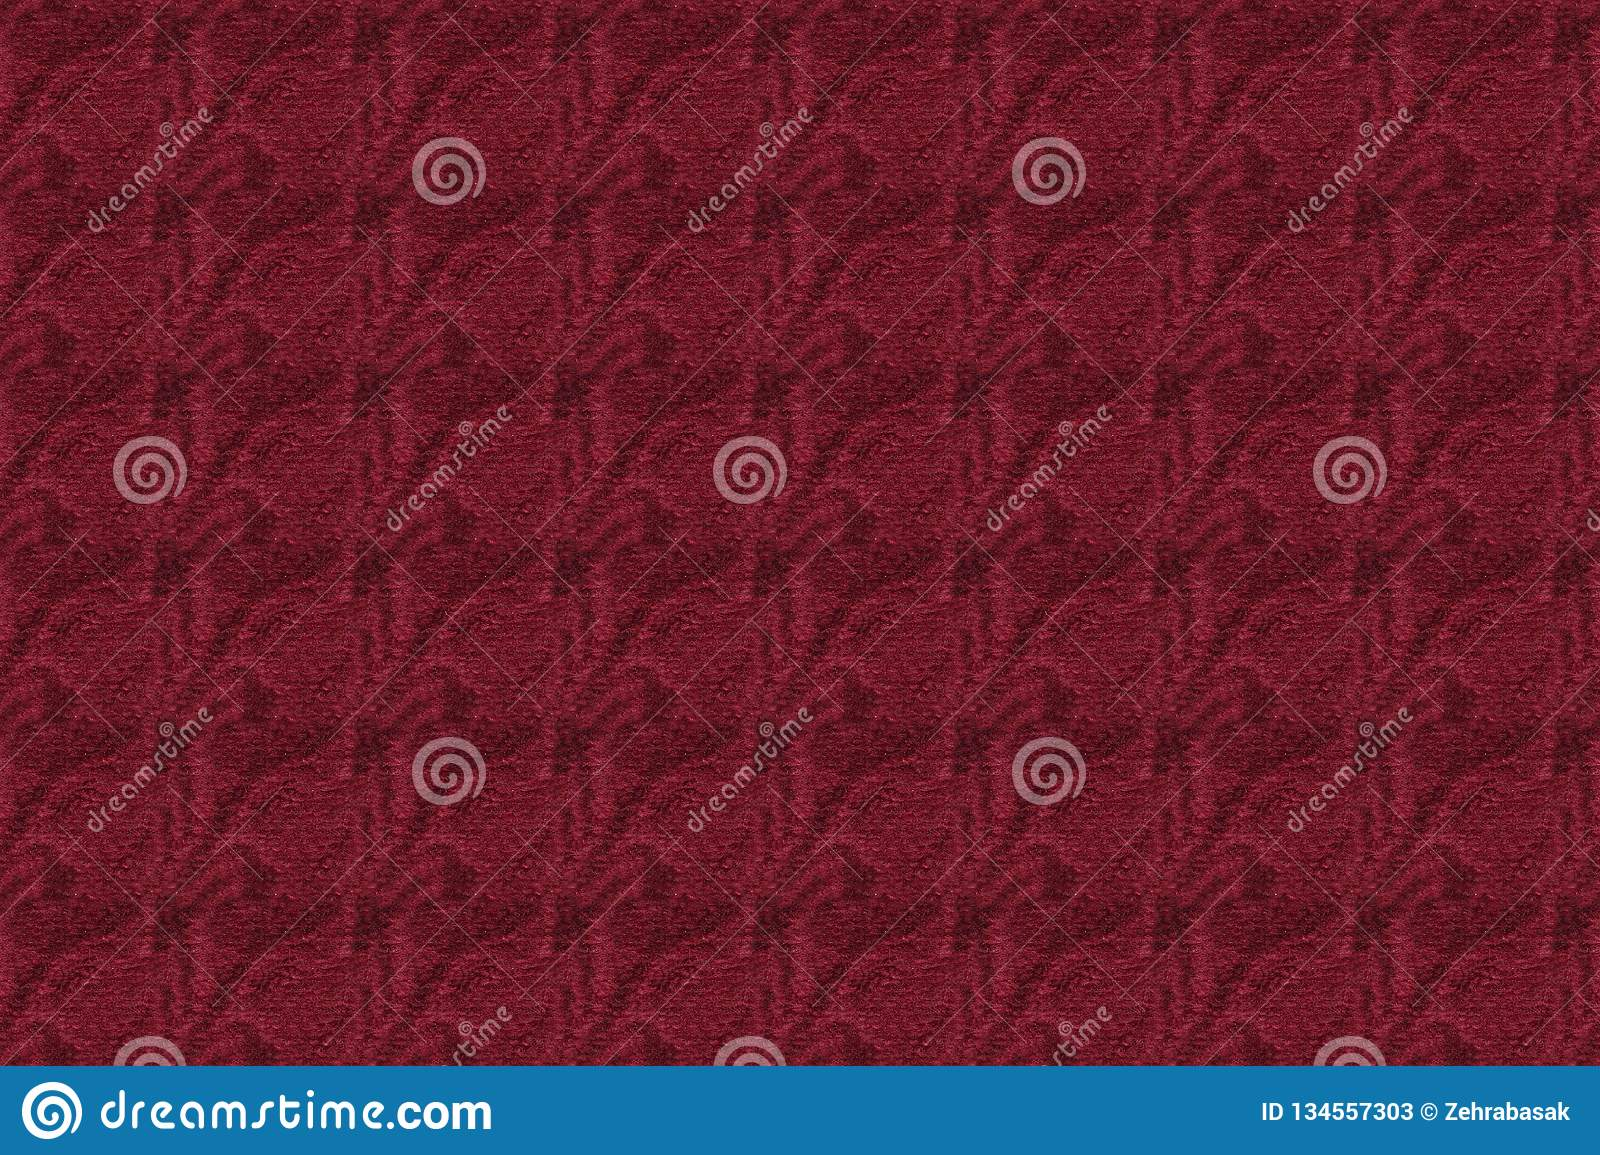 Easy To Clean Red Carpet Texture Stock Image - Image of ...  Red Carpet Texture Pattern